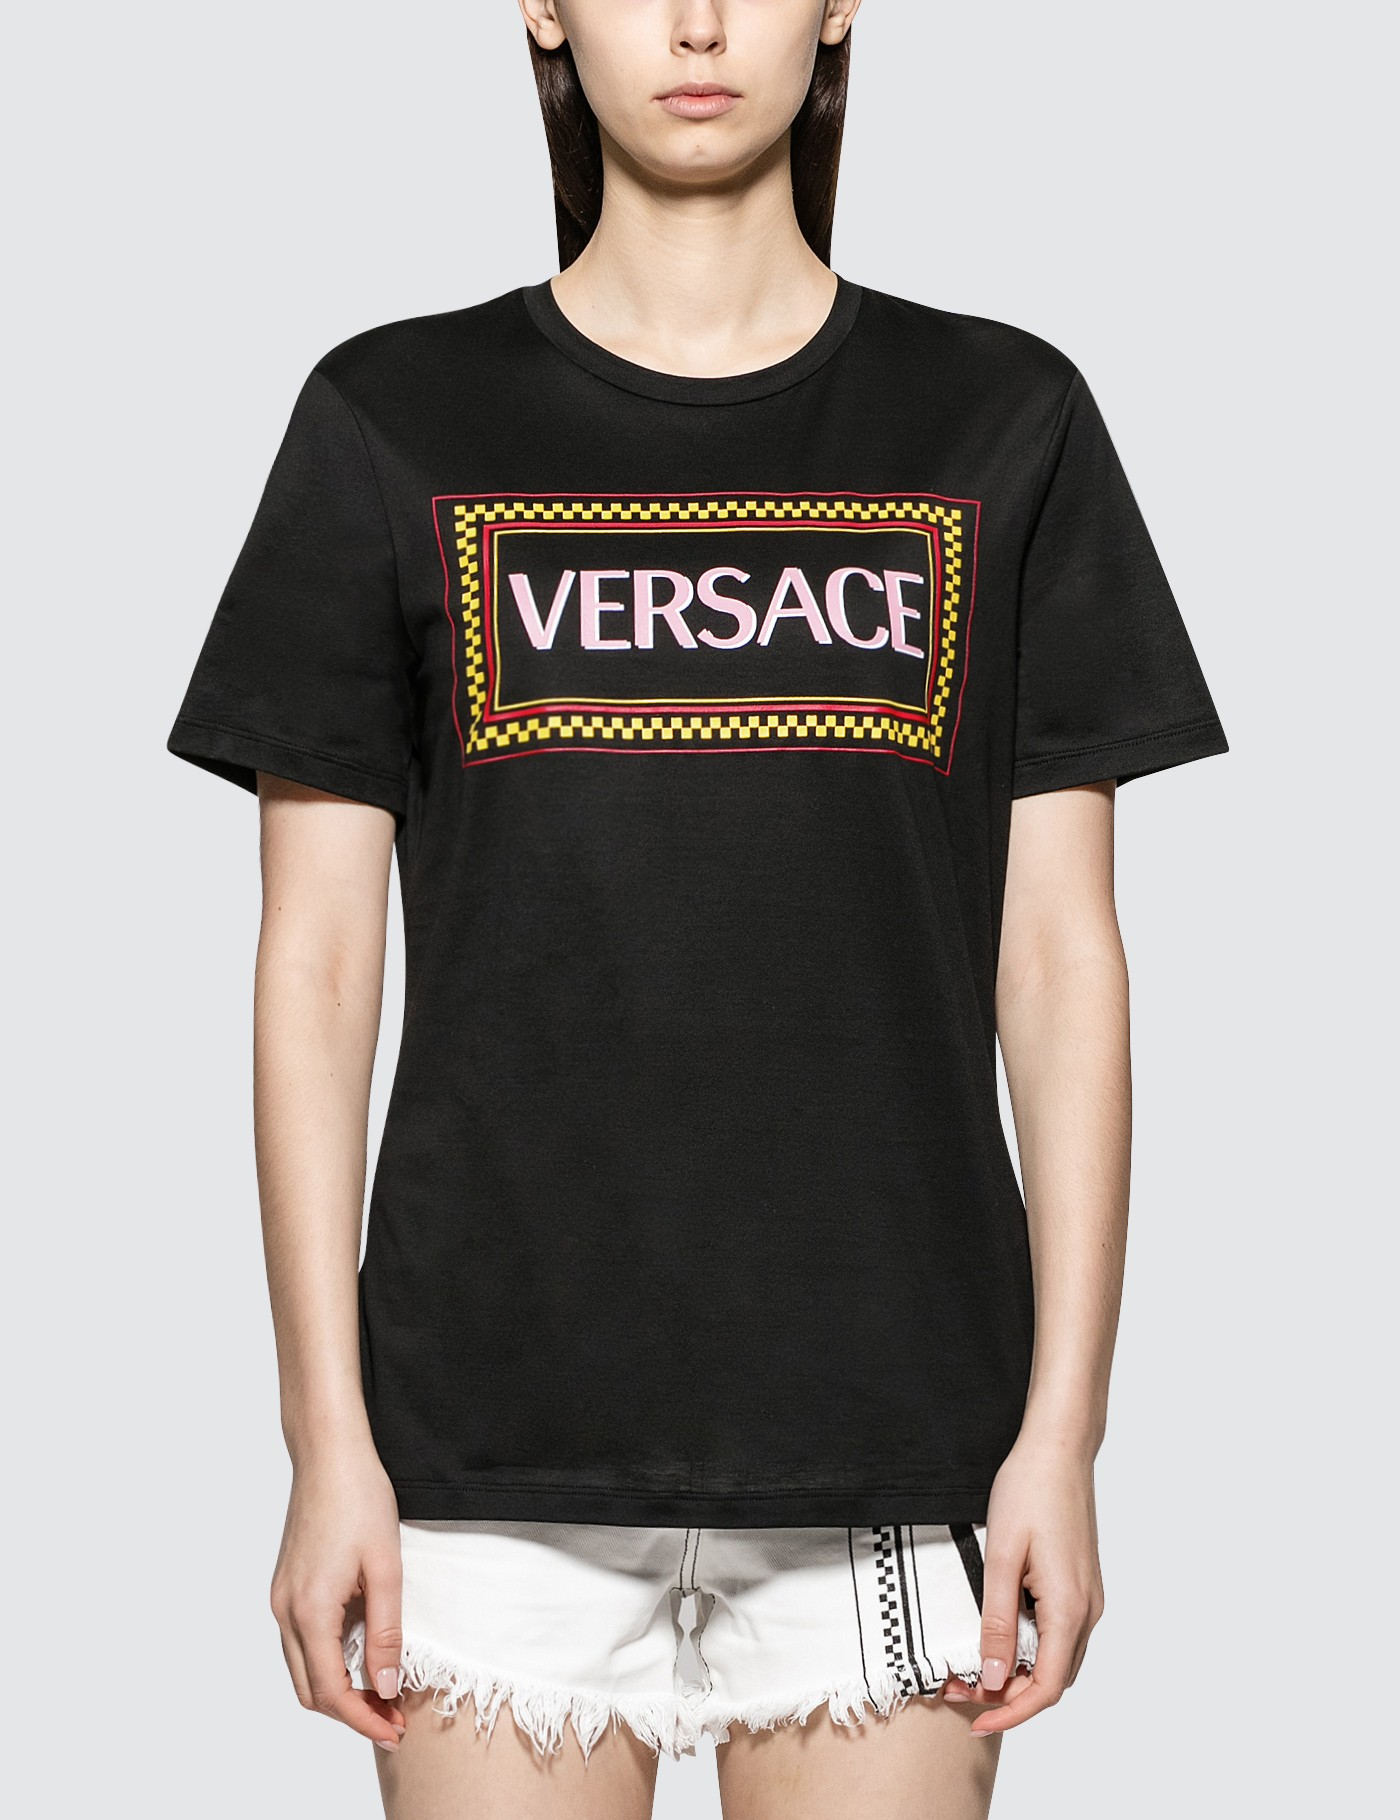 92003edc Buy Original Versace Box Logo Short Sleeve T-shirt at Indonesia ...